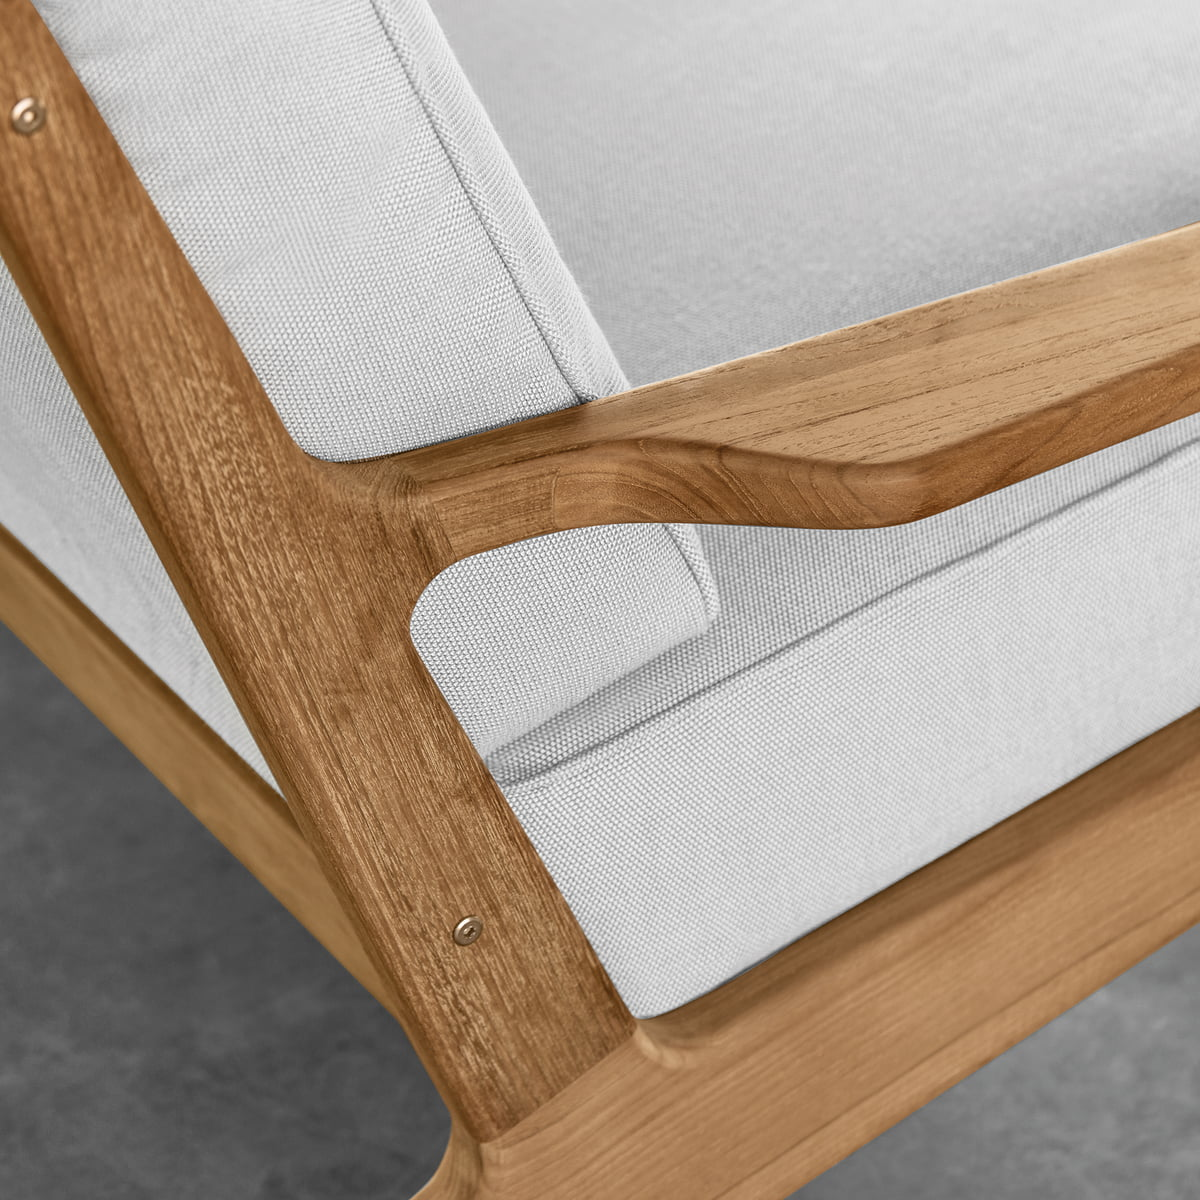 Gloster - Bay Lounge Chair in Detail - Bay Lounge Furniture By Gloster Connox